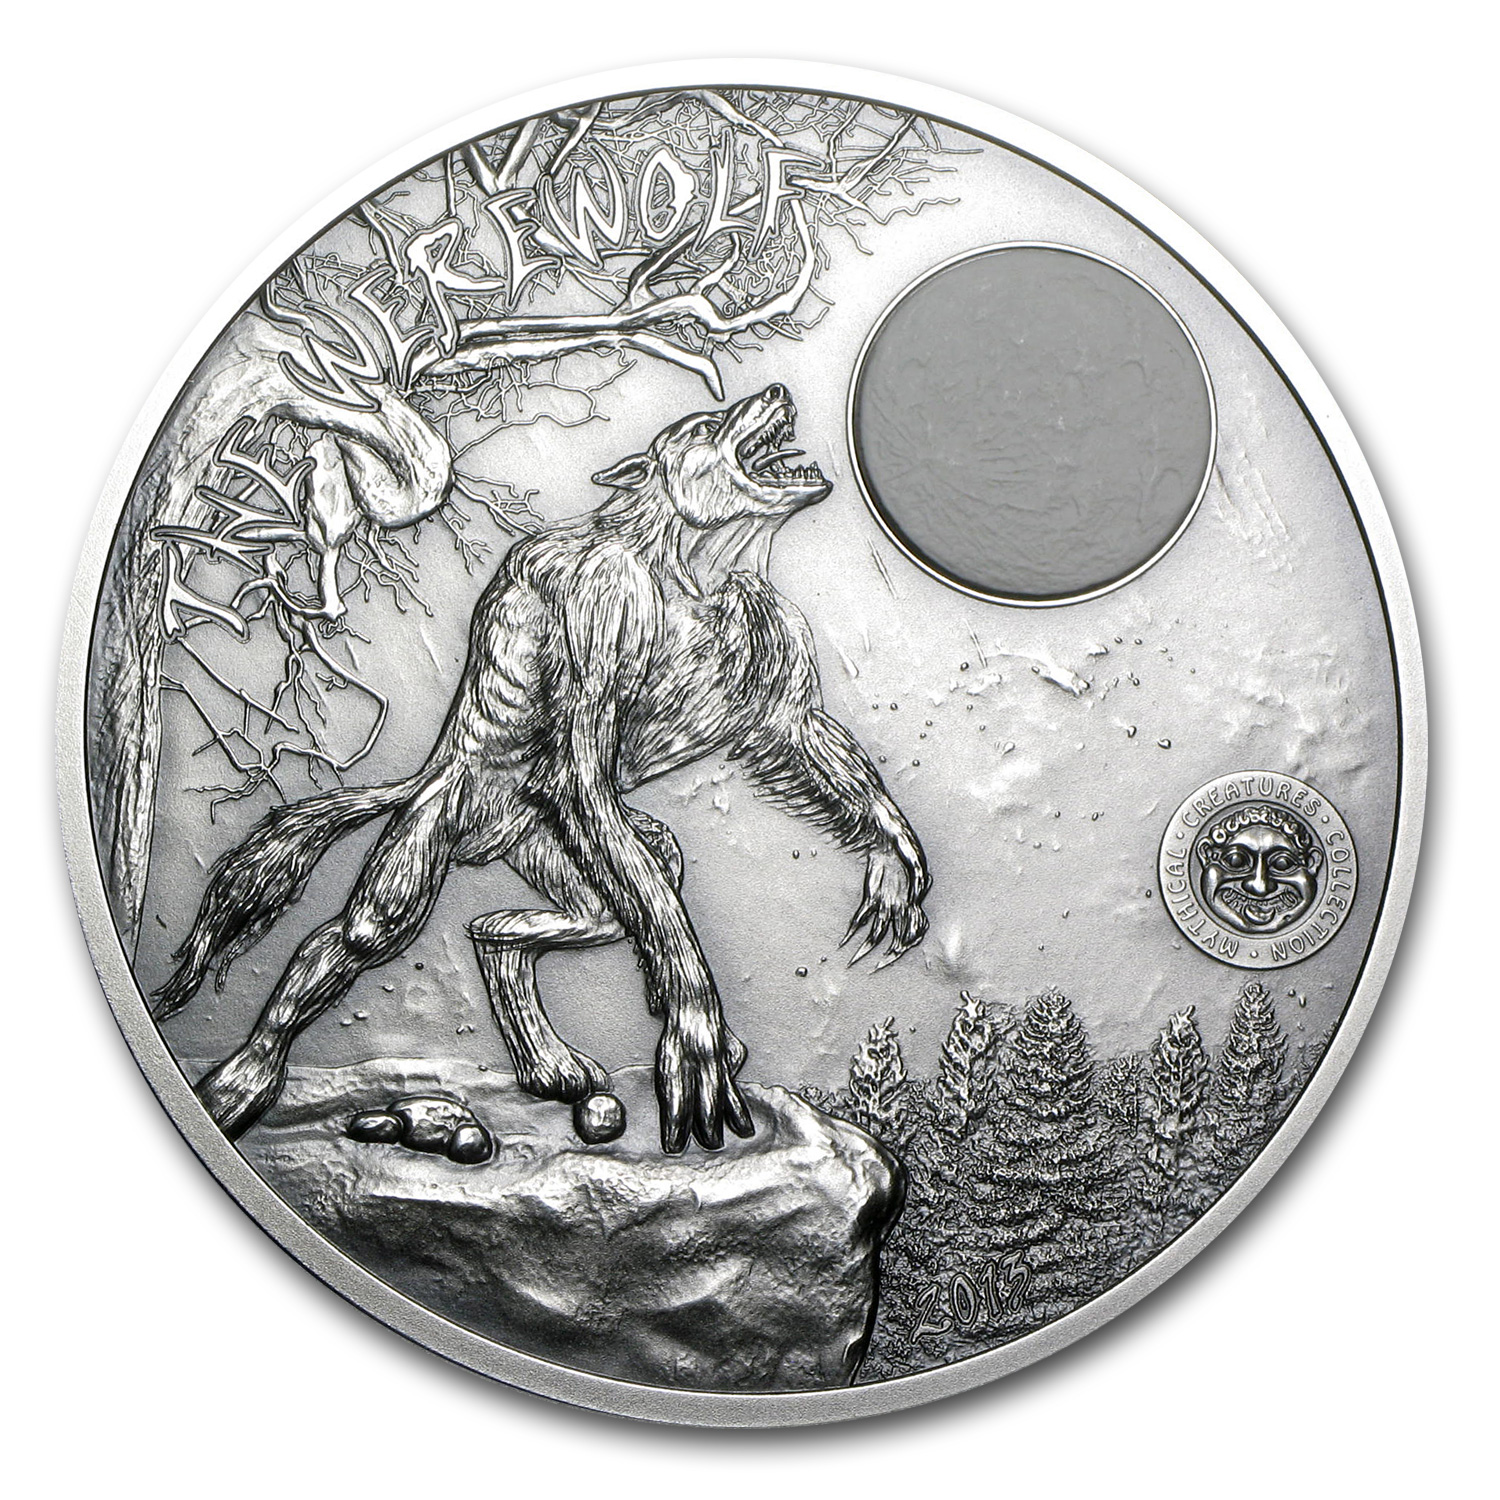 2013 Palau 2 oz Silver Mythical Creatures Collection Werewolf